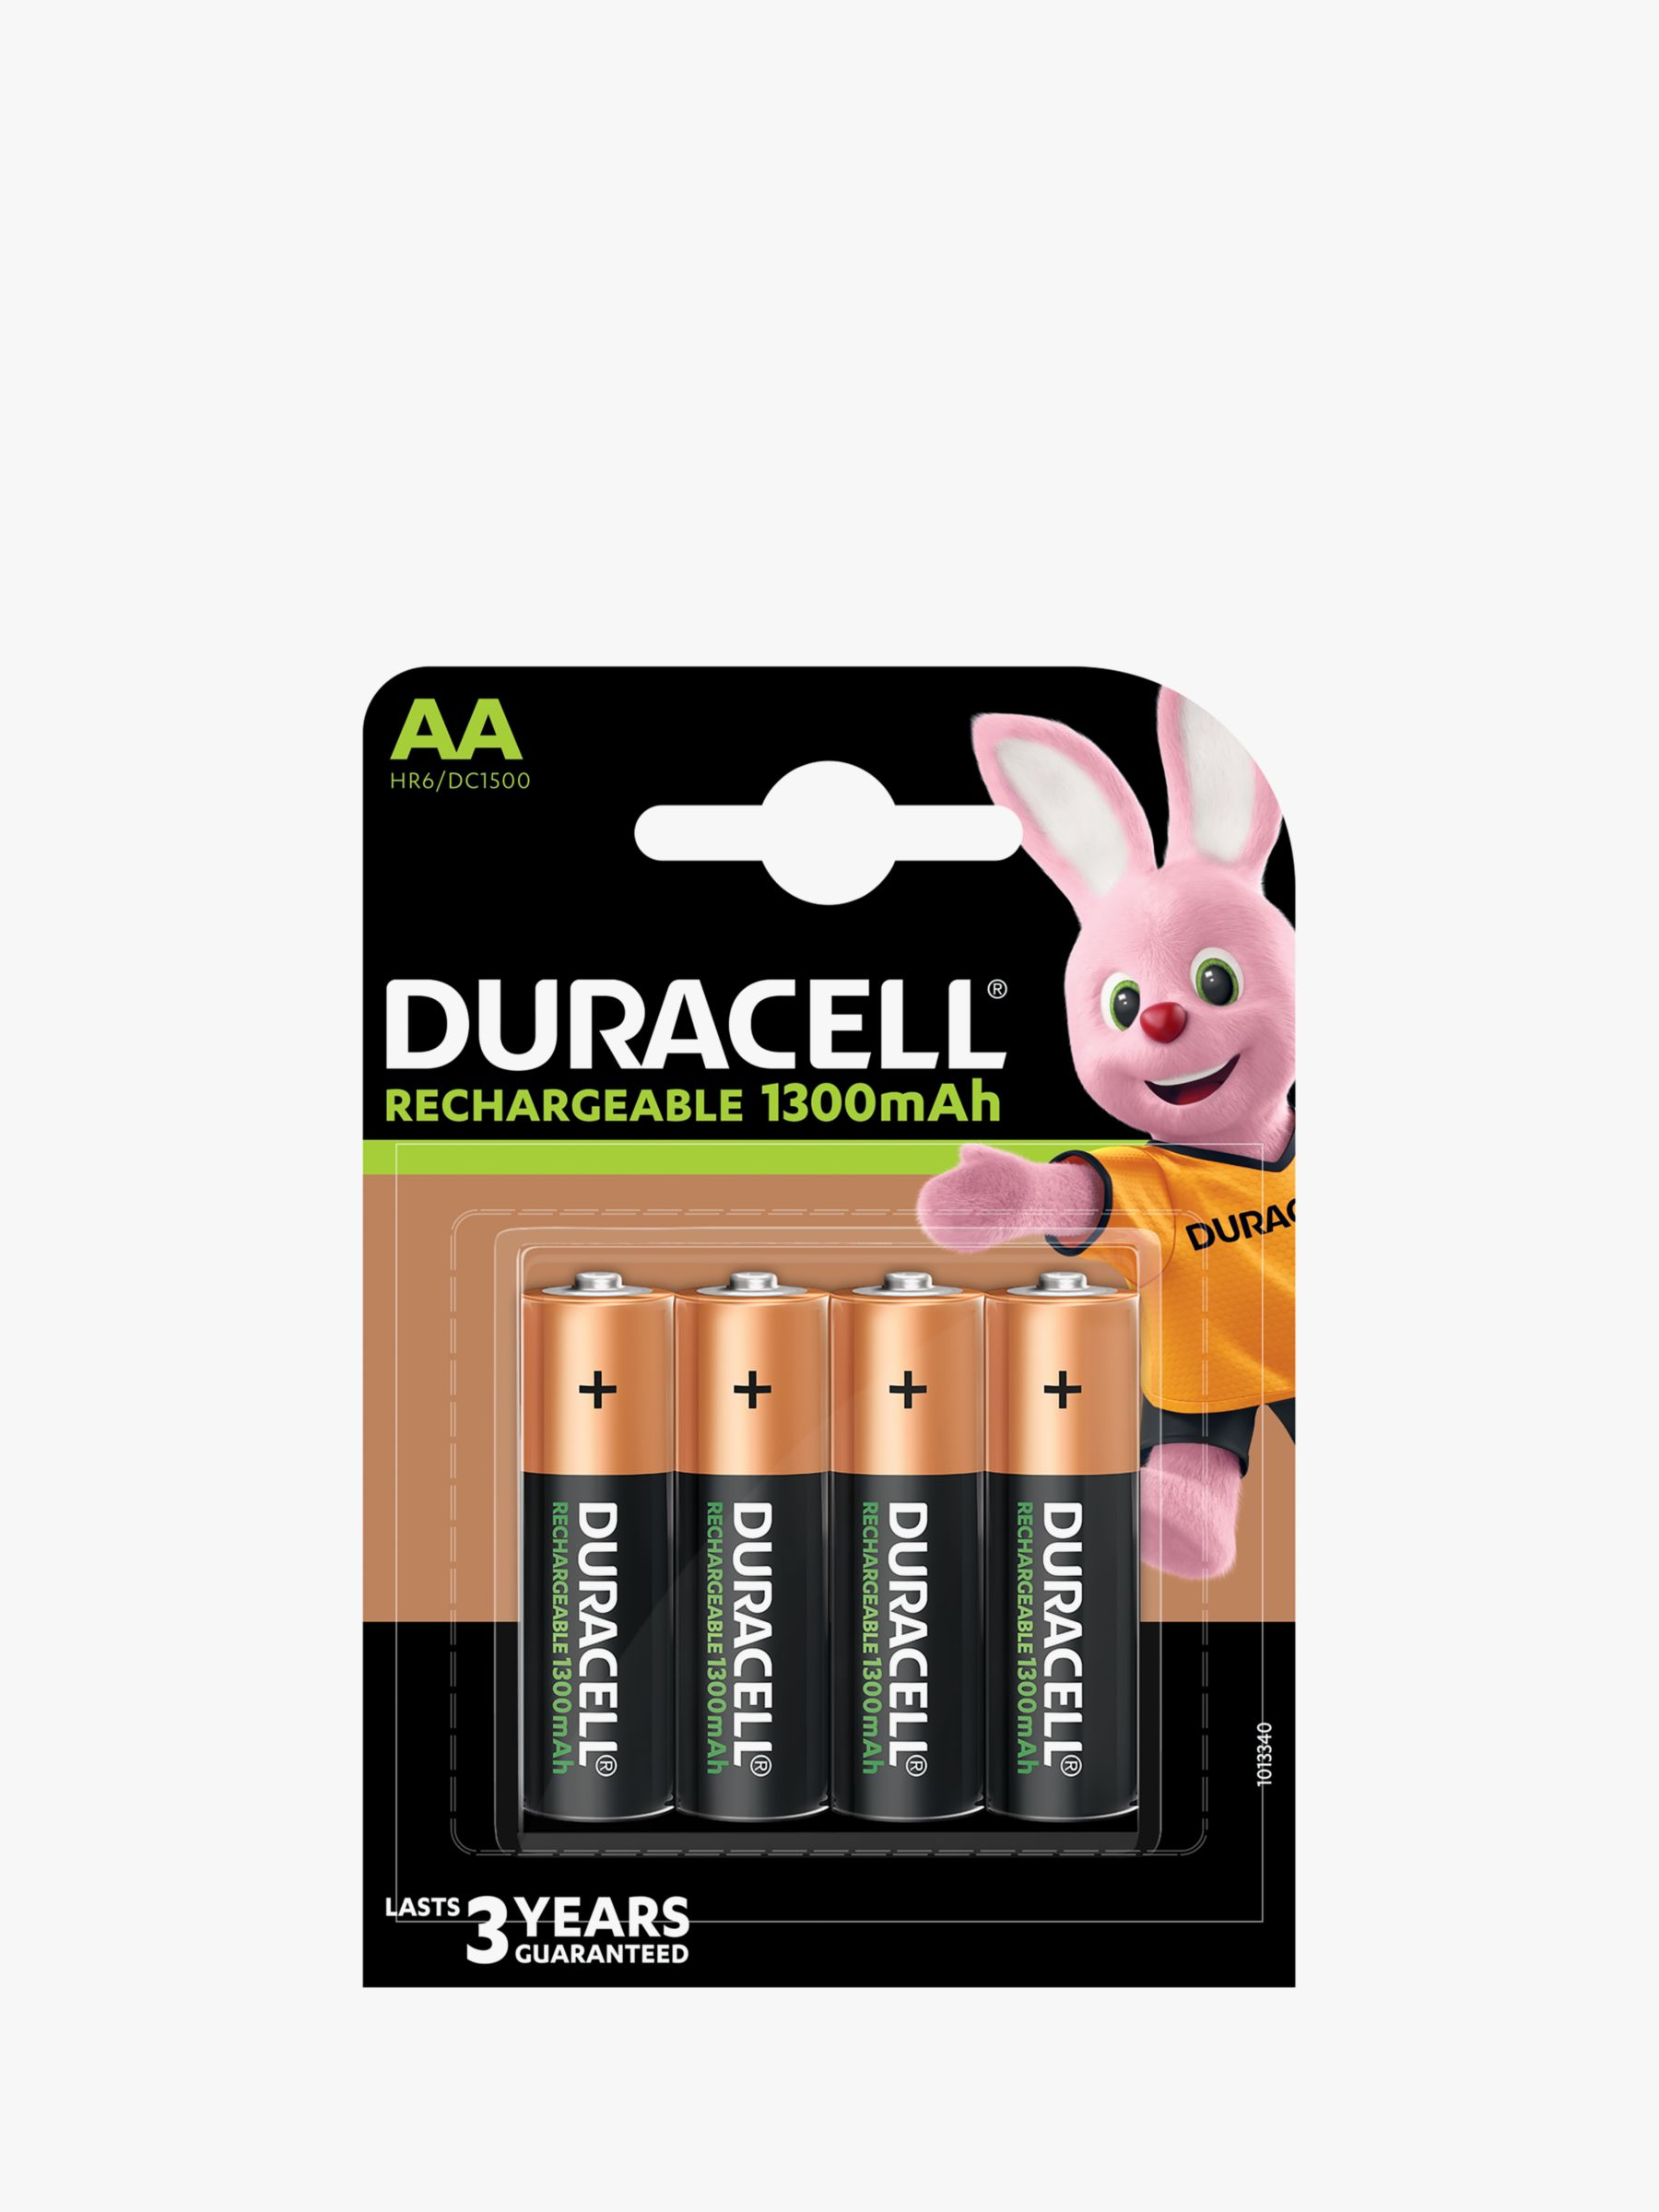 Duracell Duracell Recharge Plus, Rechargeable AA Batteries, Pack of 4